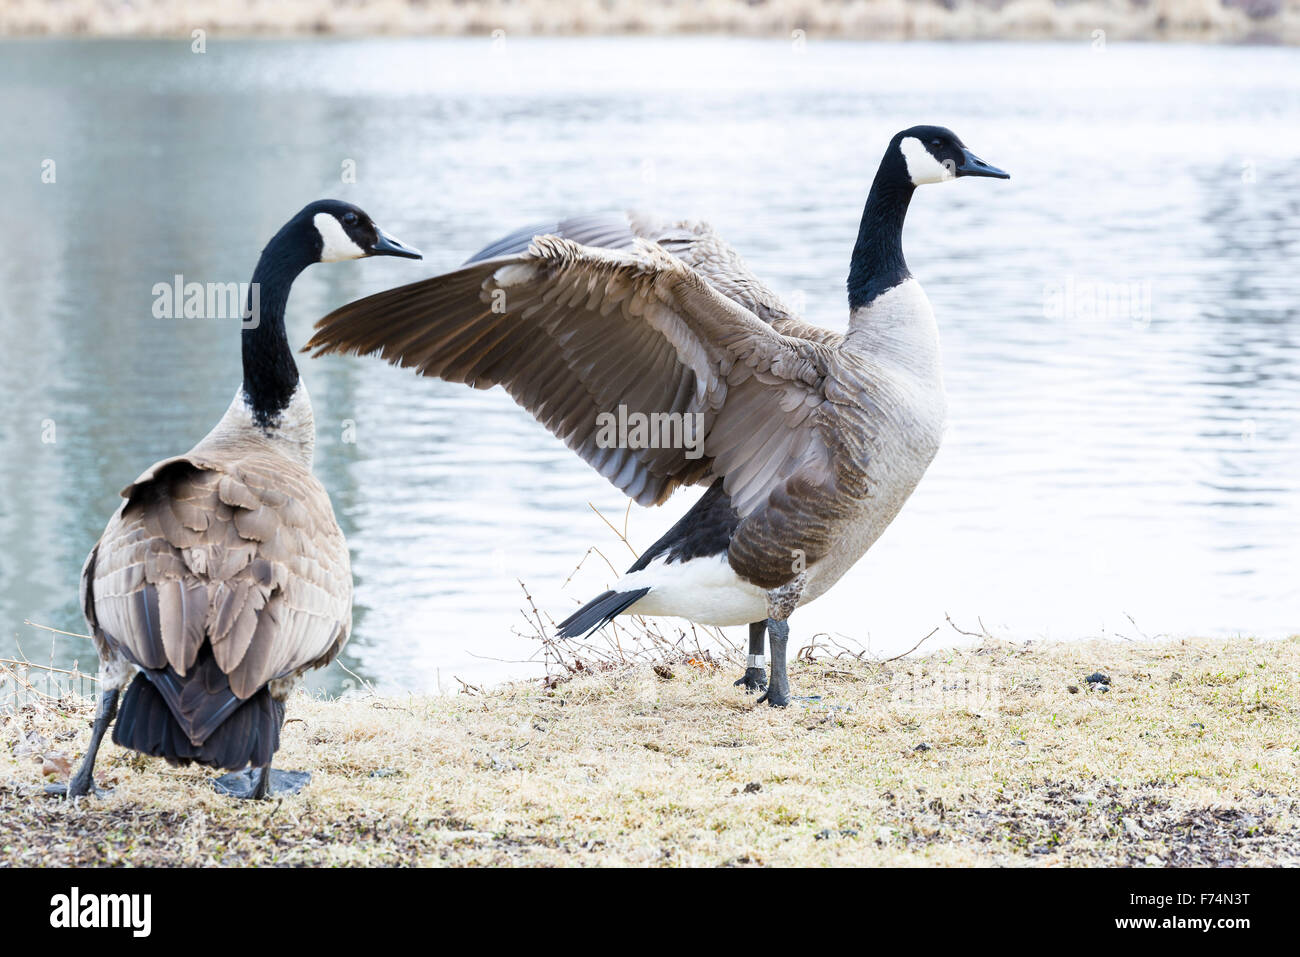 Cananda goose stretching it's wings - Stock Image